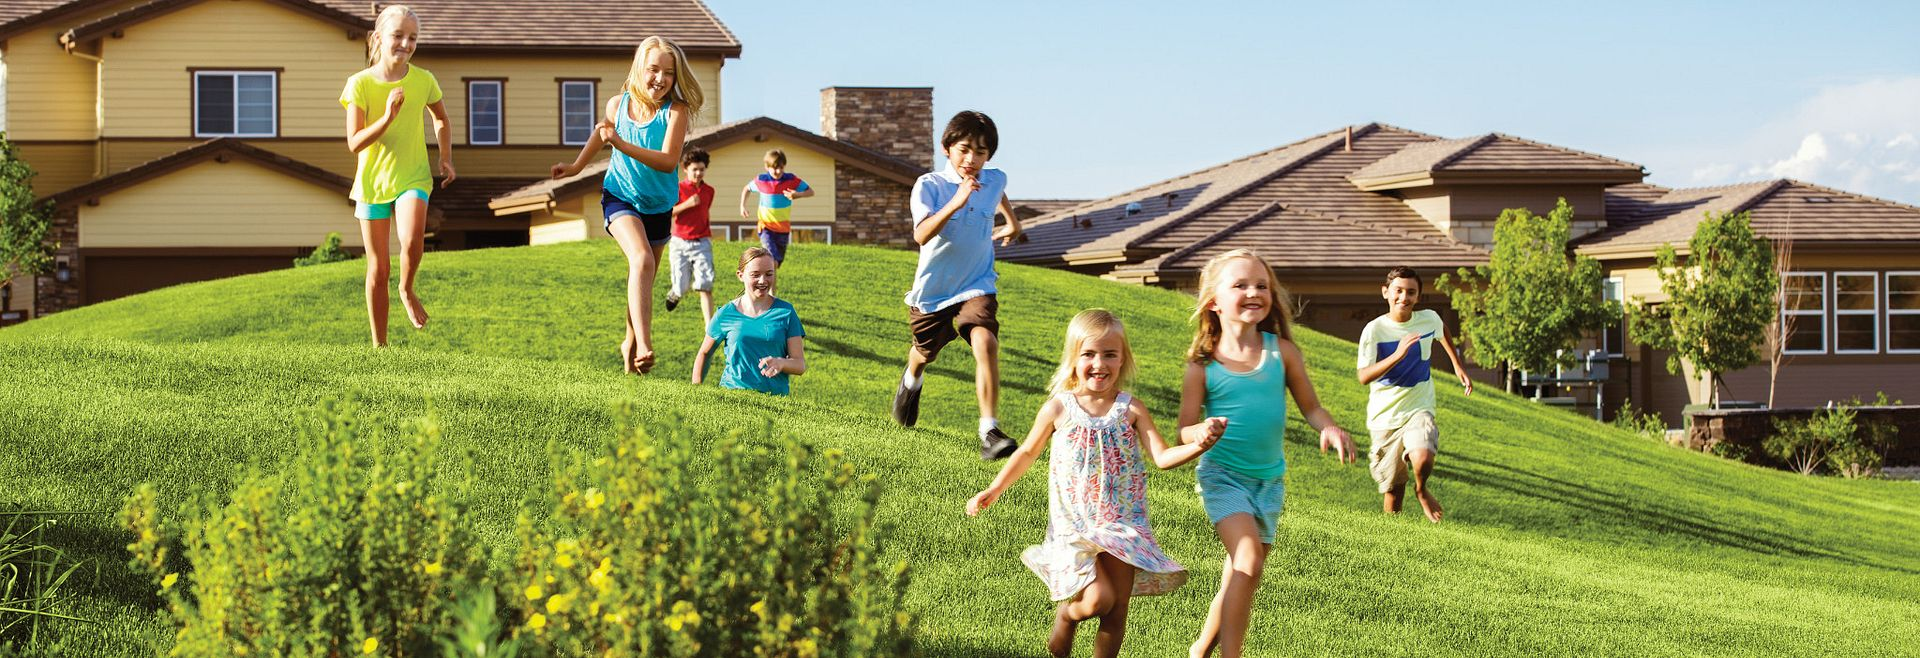 Stepping Stone Lifestyle Kids Running Down Hills